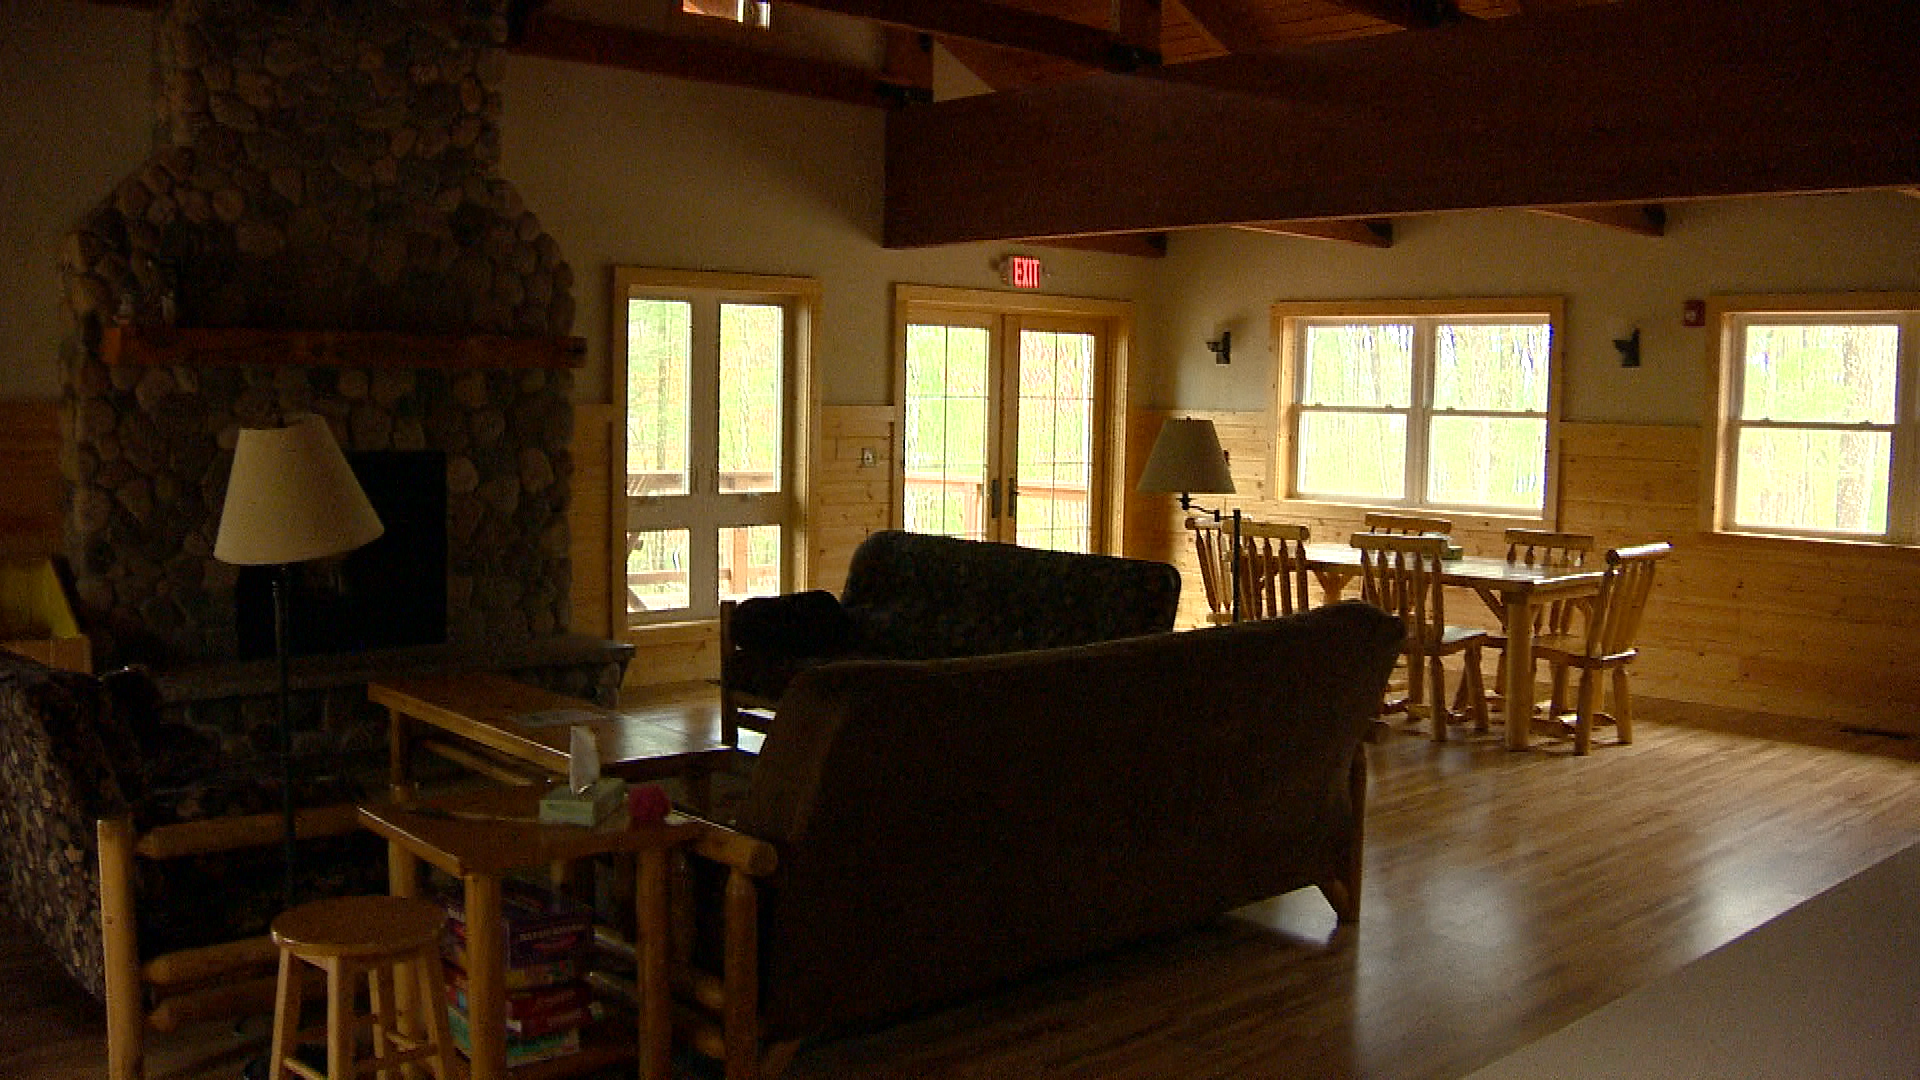 Interior of main lodge at camp (WLUK){&amp;nbsp;}<p></p>